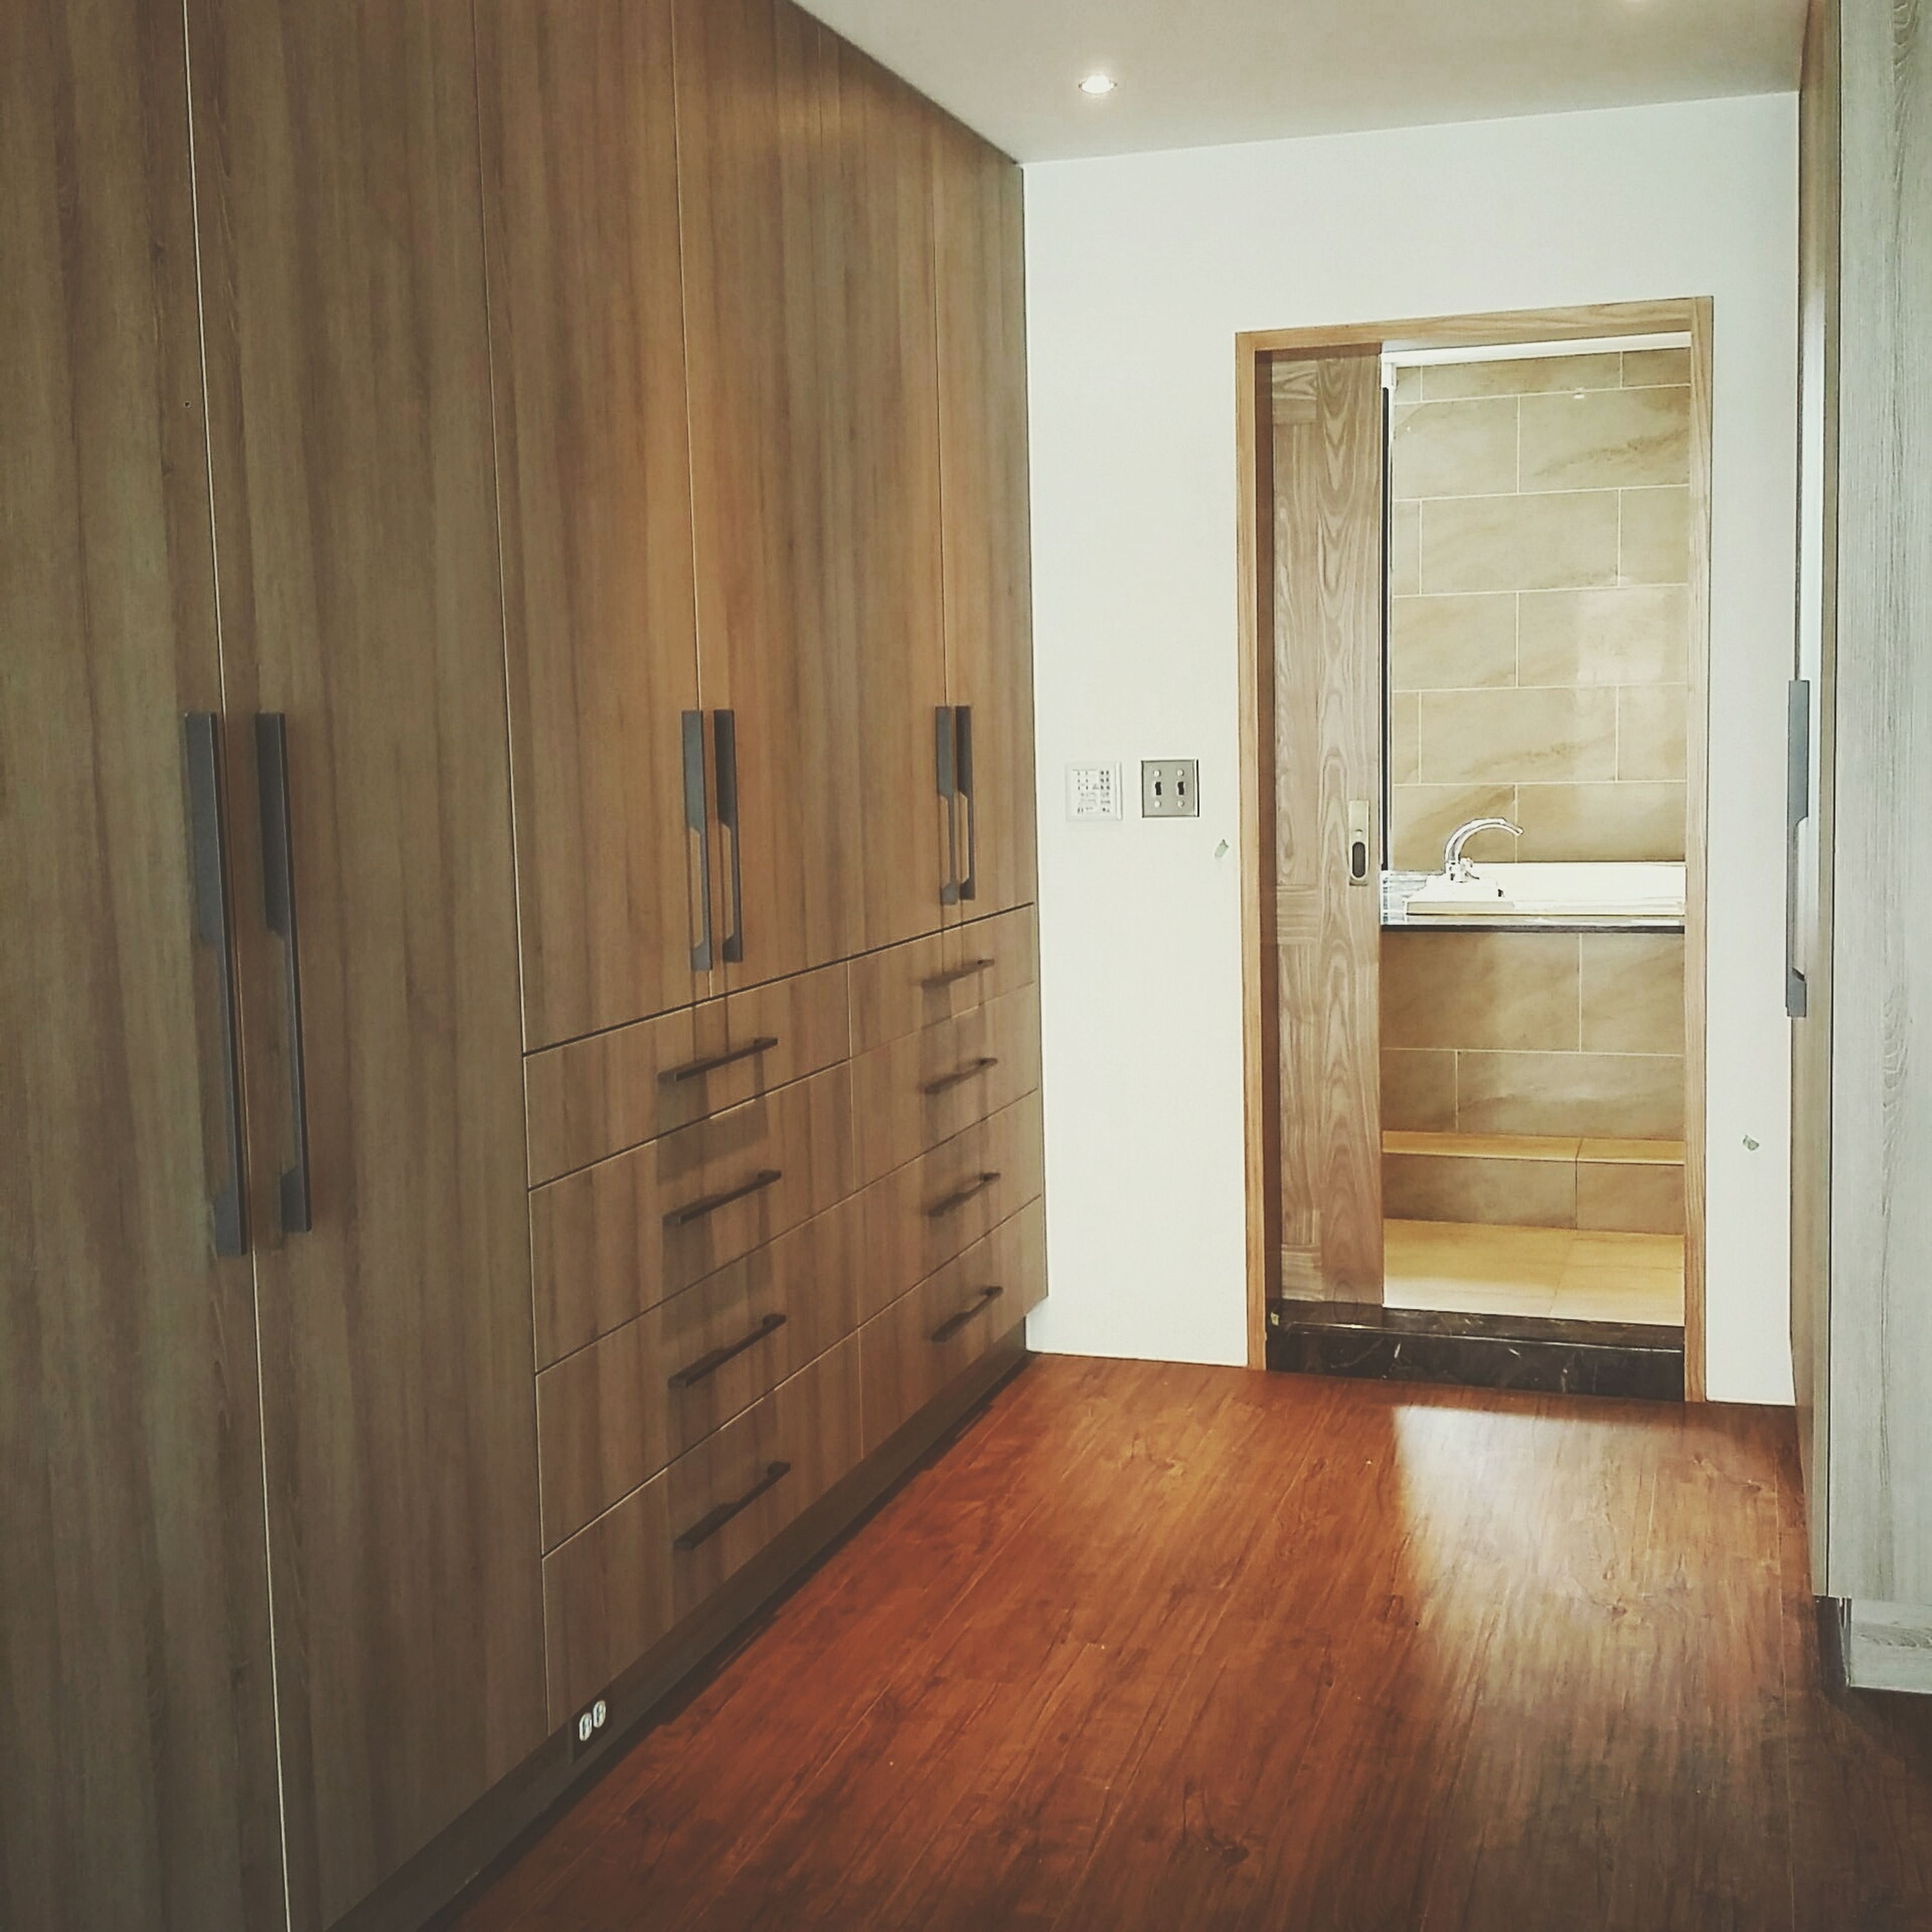 indoors, window, home interior, door, empty, absence, flooring, glass - material, wood - material, domestic room, hardwood floor, house, table, built structure, architecture, reflection, no people, transparent, open, curtain